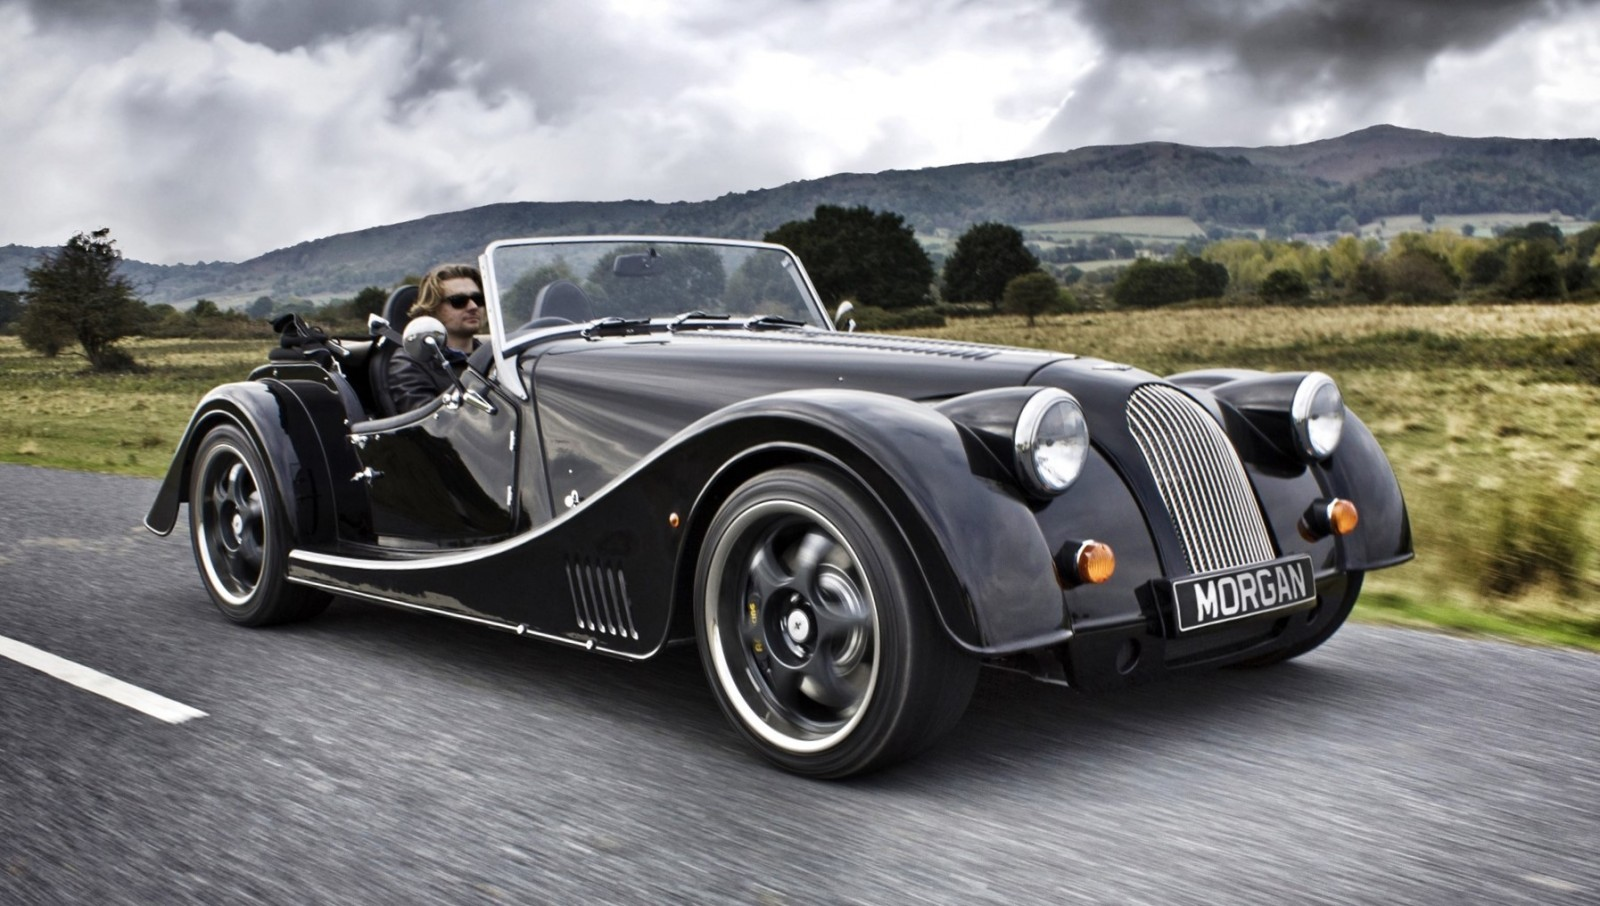 2015 Morgan Plus 8 6